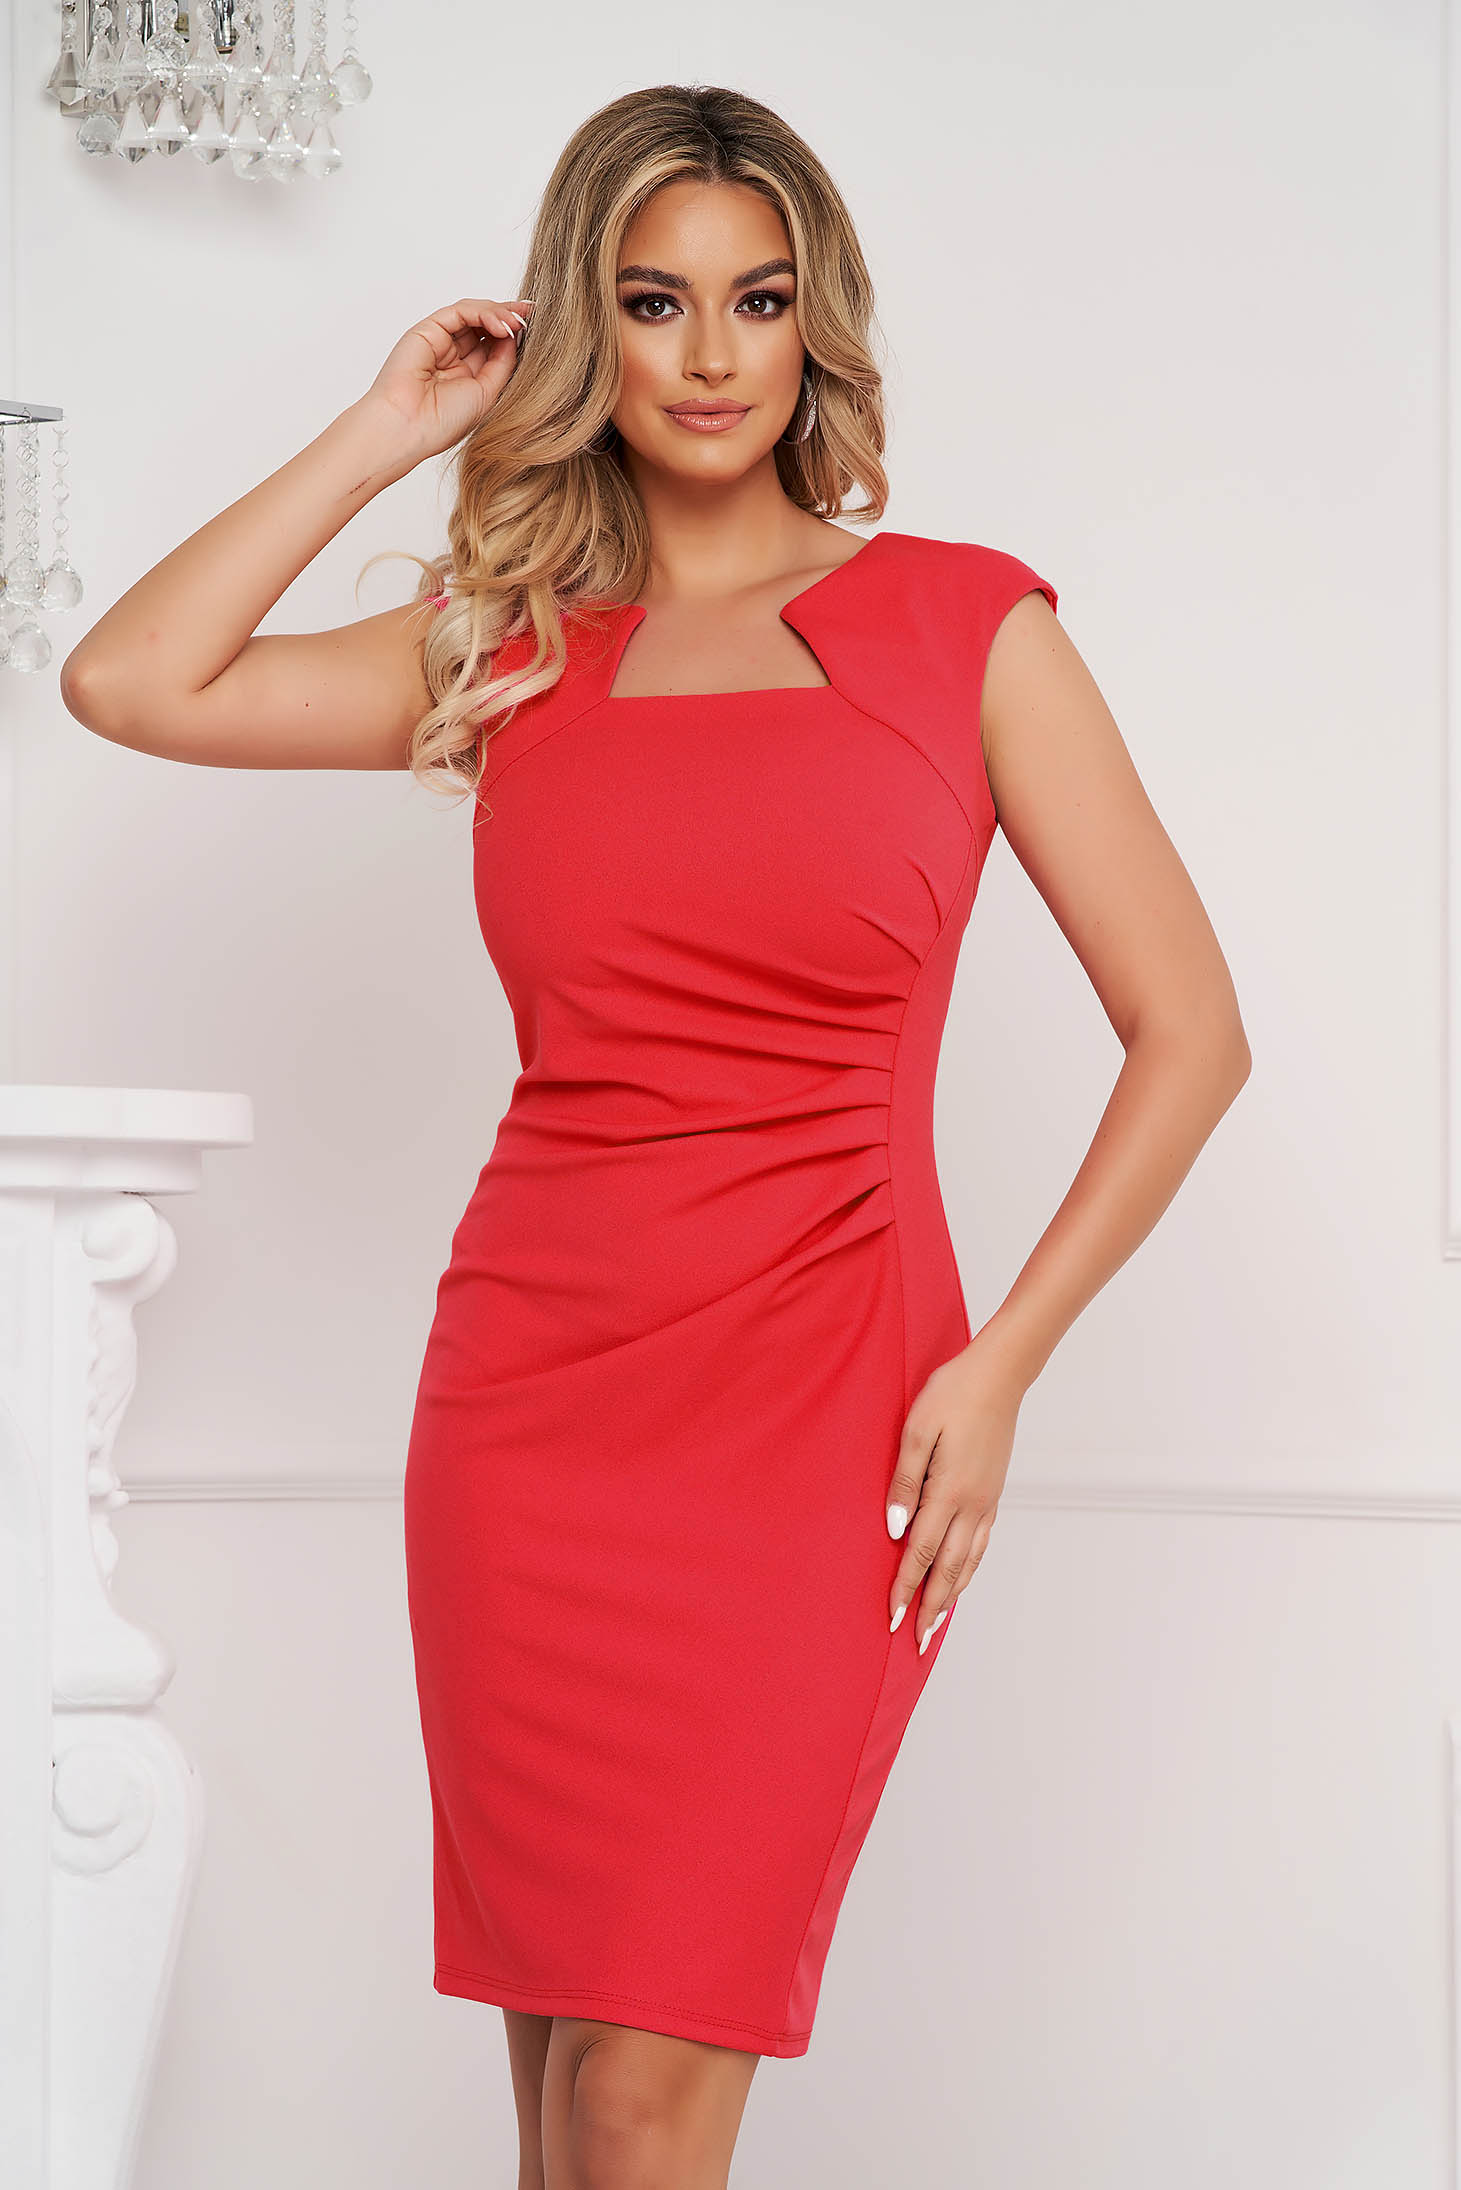 Red dress office short cut pencil from elastic fabric short sleeves